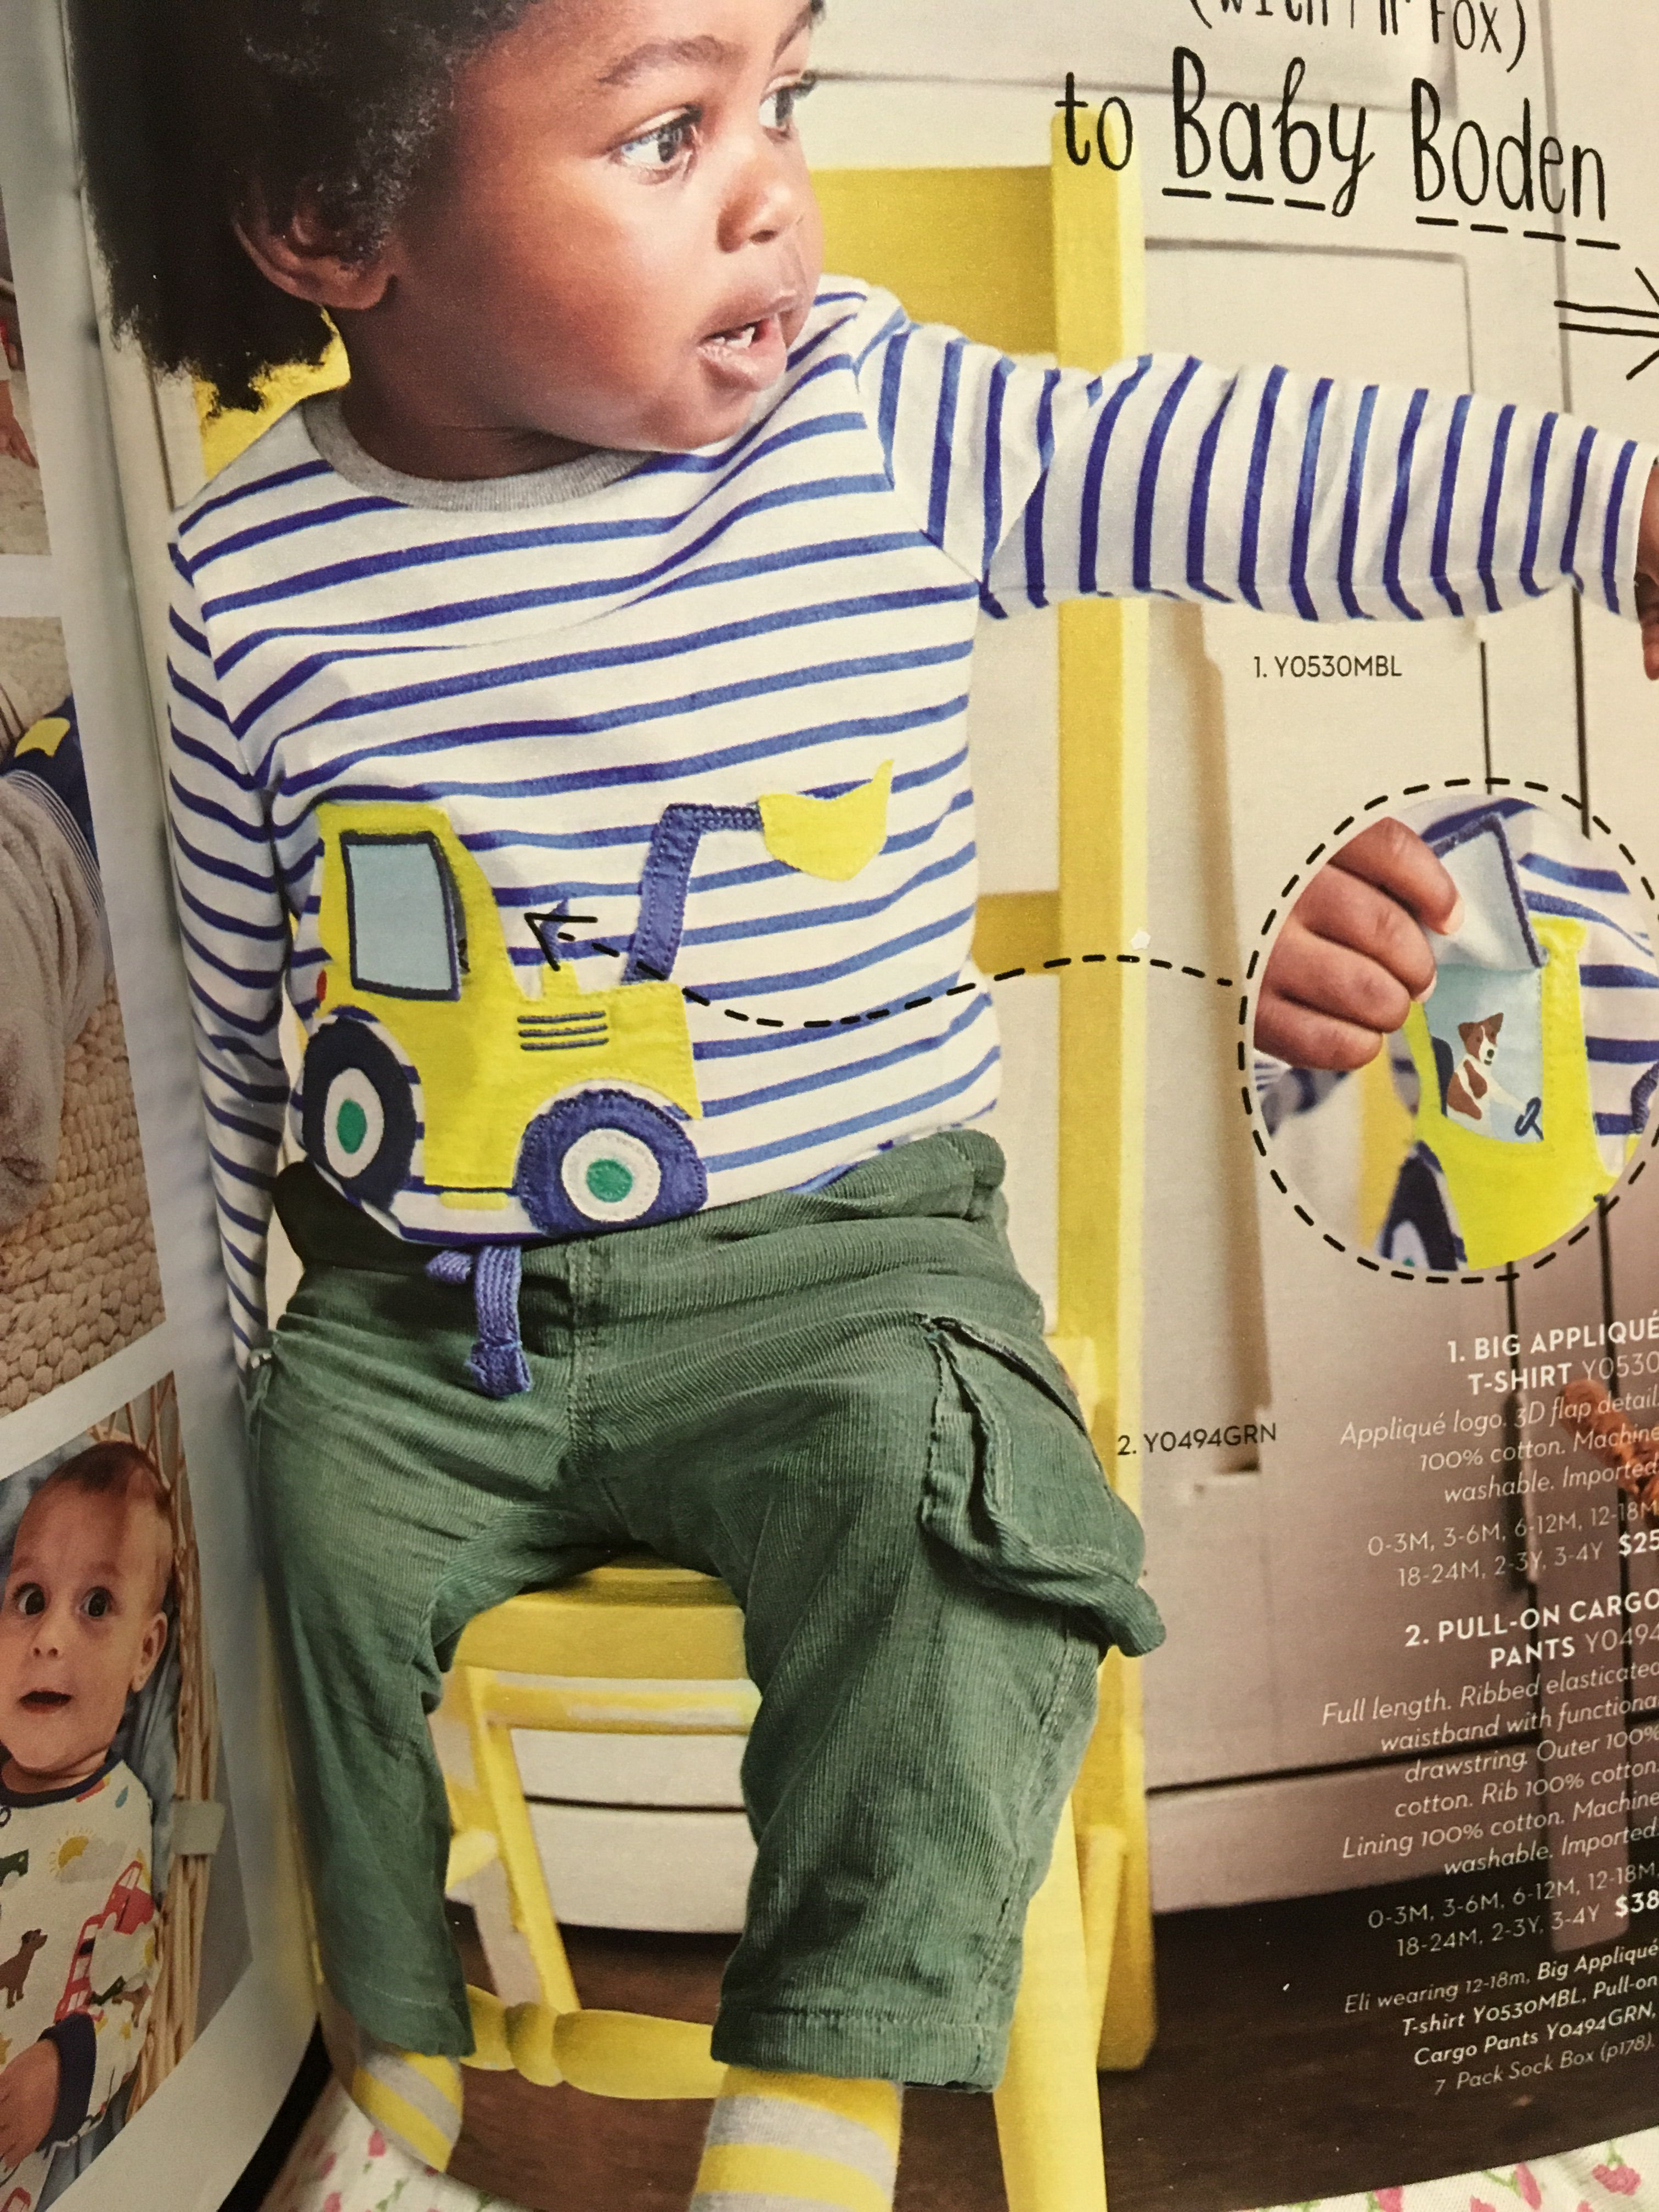 Pin By Abc Def On Fashionable Babies And Tots Little Girl Poses Baby Fashion Pull On Pants